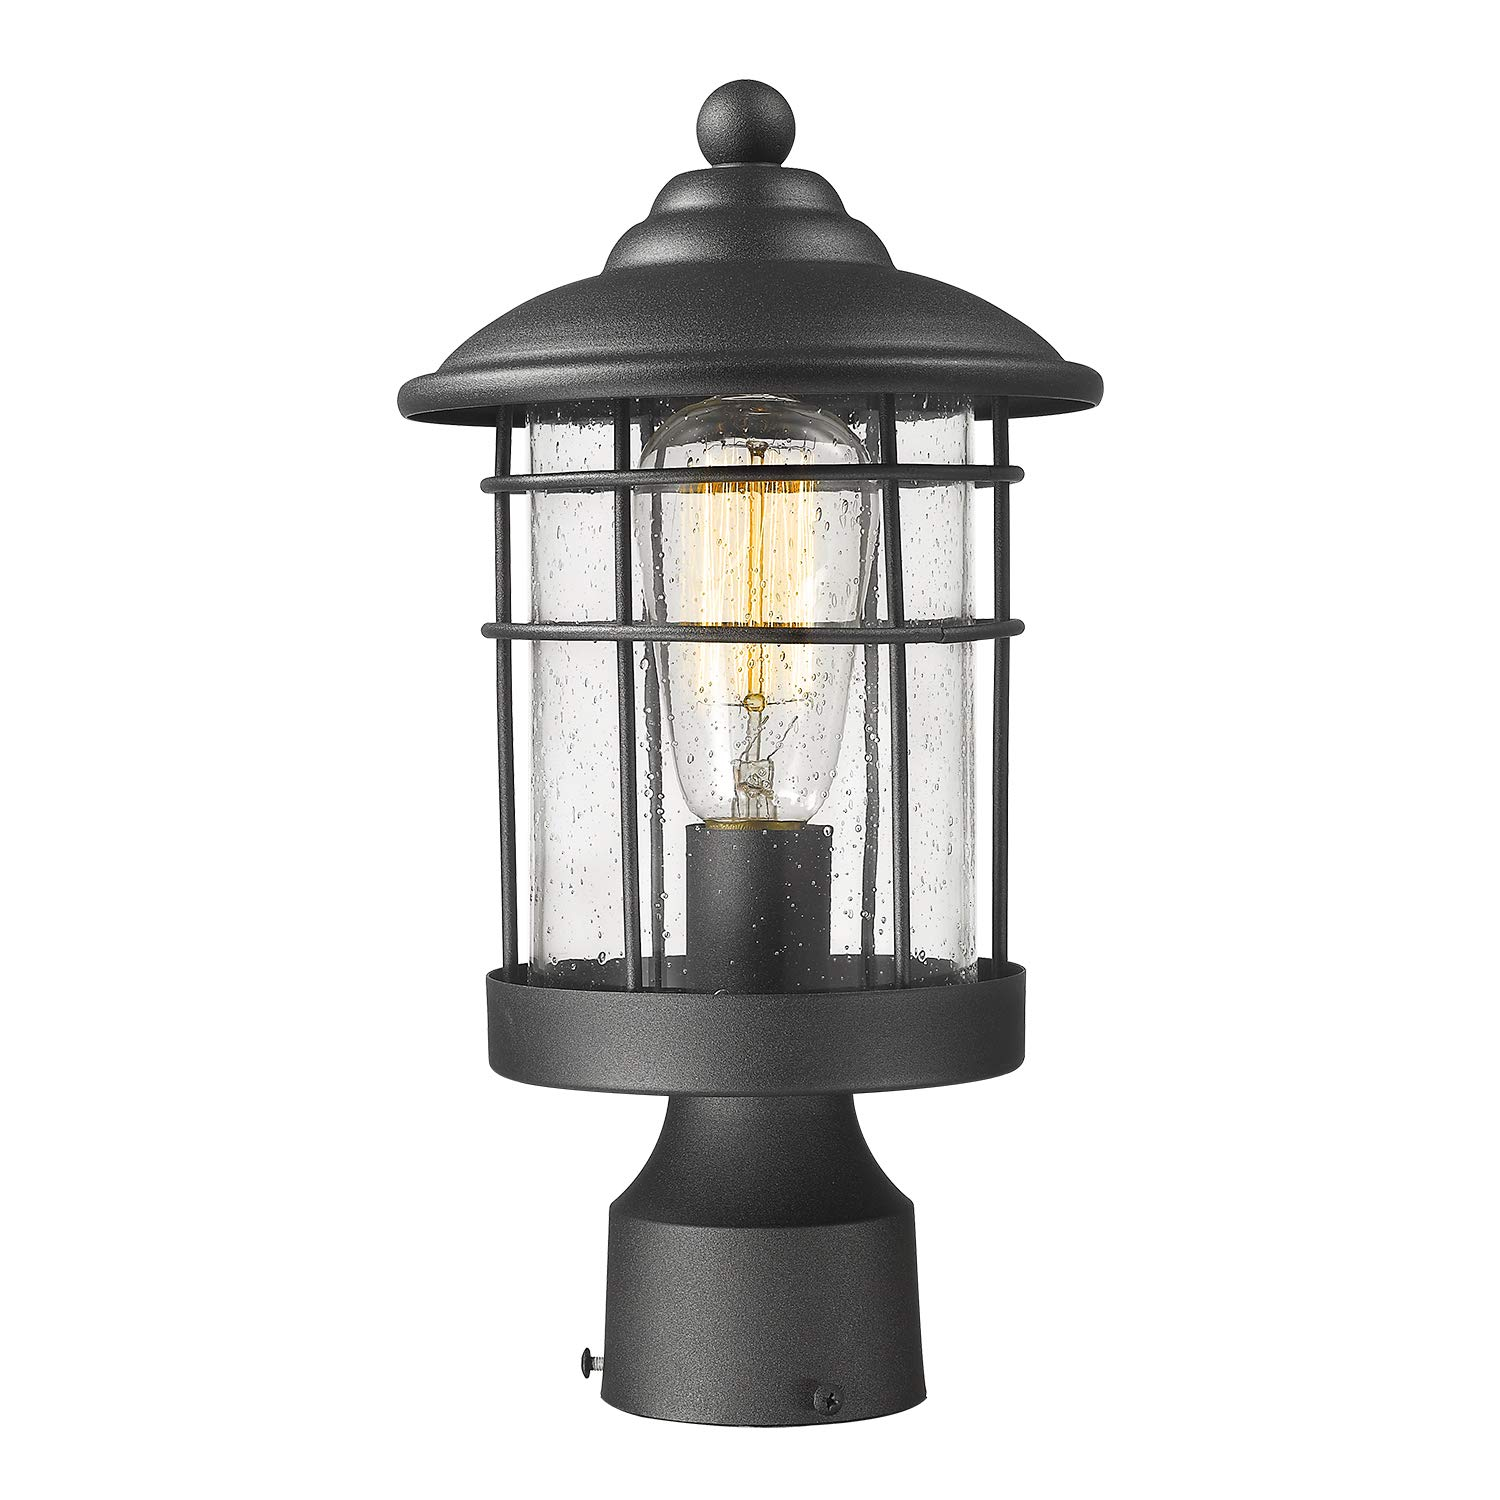 Emliviar 1-Light Outdoor Post Light, Exterior Post Lantern in Black Finish with Seeded Glass, 1803CW2-P by EMLIVIAR